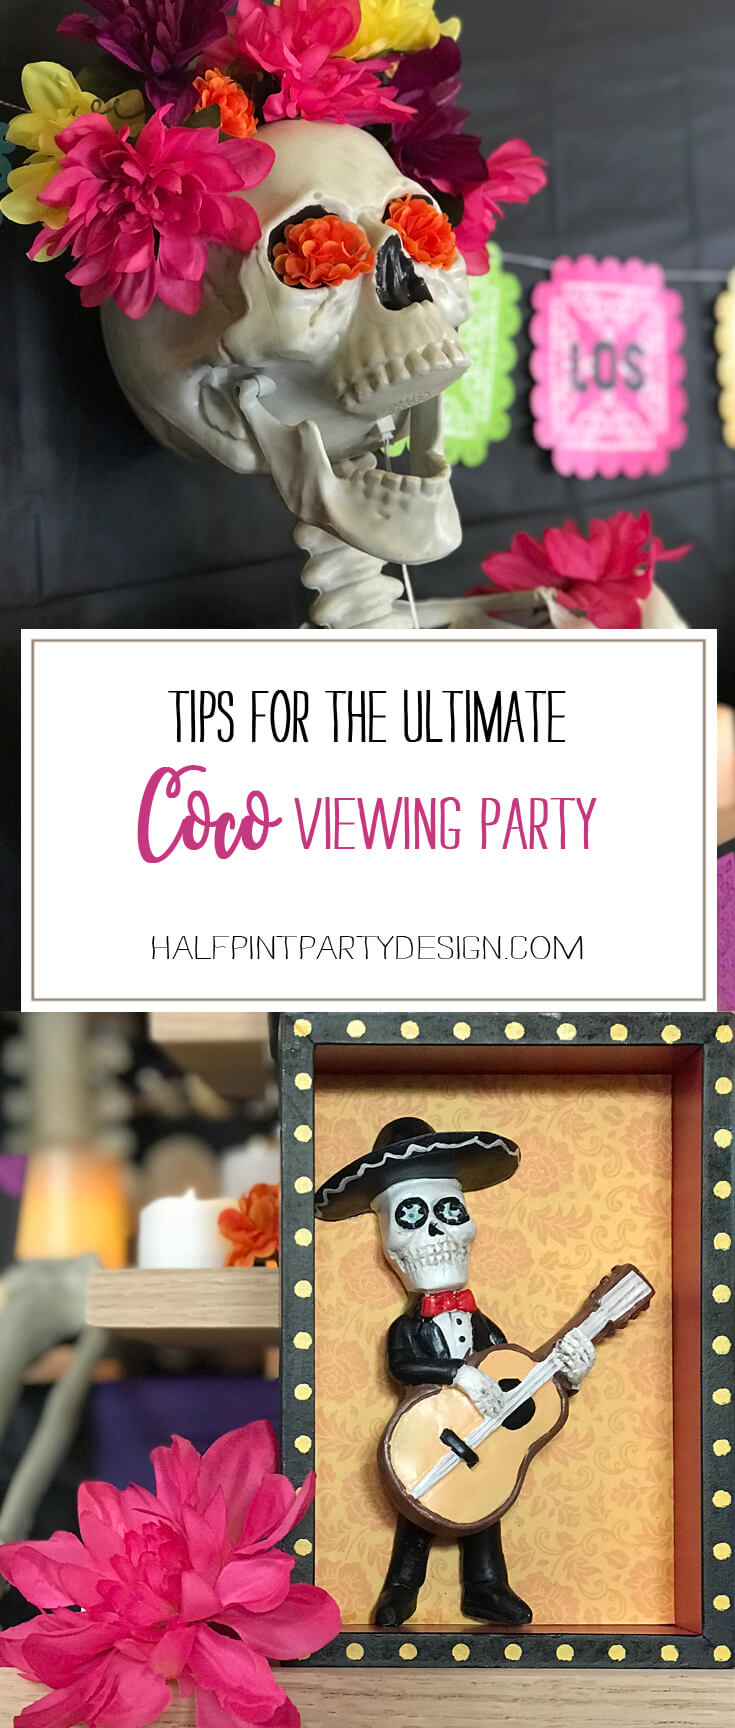 Are you getting ready for the Disney Pixar release of Coco like I am? Don't stash all your Halloween decor just yet. Save a few things for hosting the Ultimate Coco Movie Party! Coco Viewing Party Tips at Halfpint Design. Day of the Dead Party, Dia de los Muertos, Coco birthday party